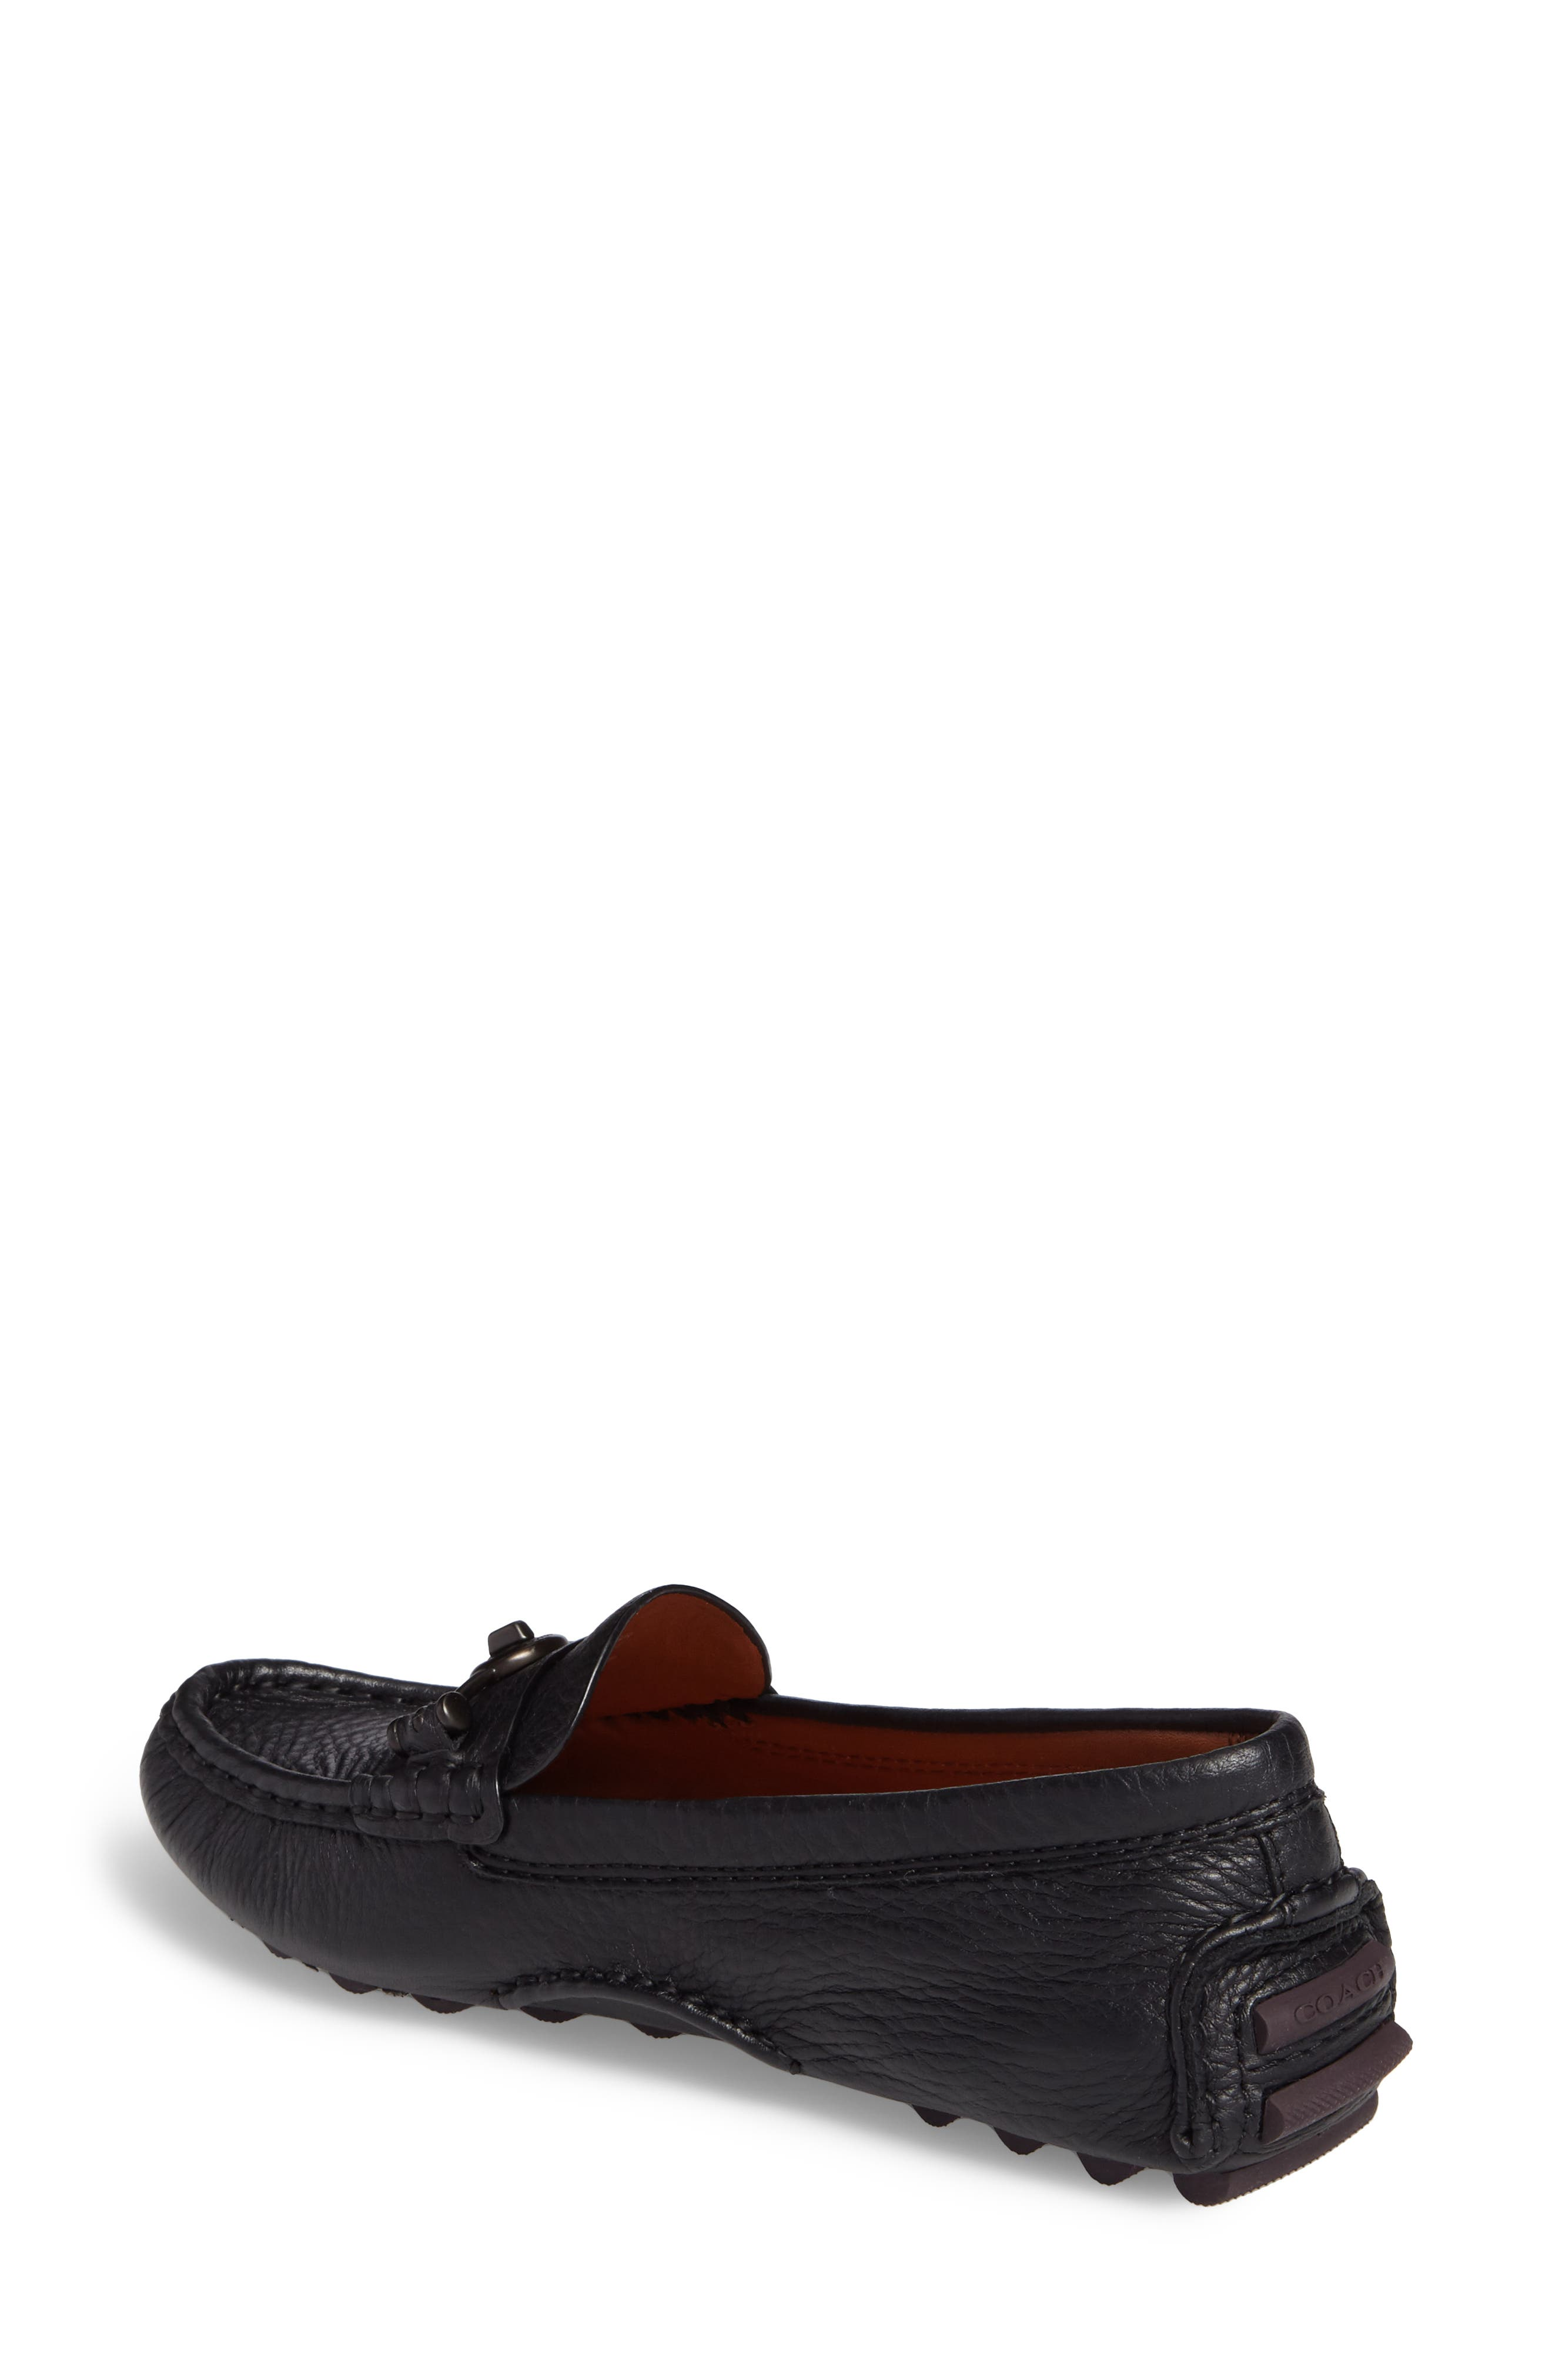 Alternate Image 2  - COACH Crosby Driver Loafer (Women)